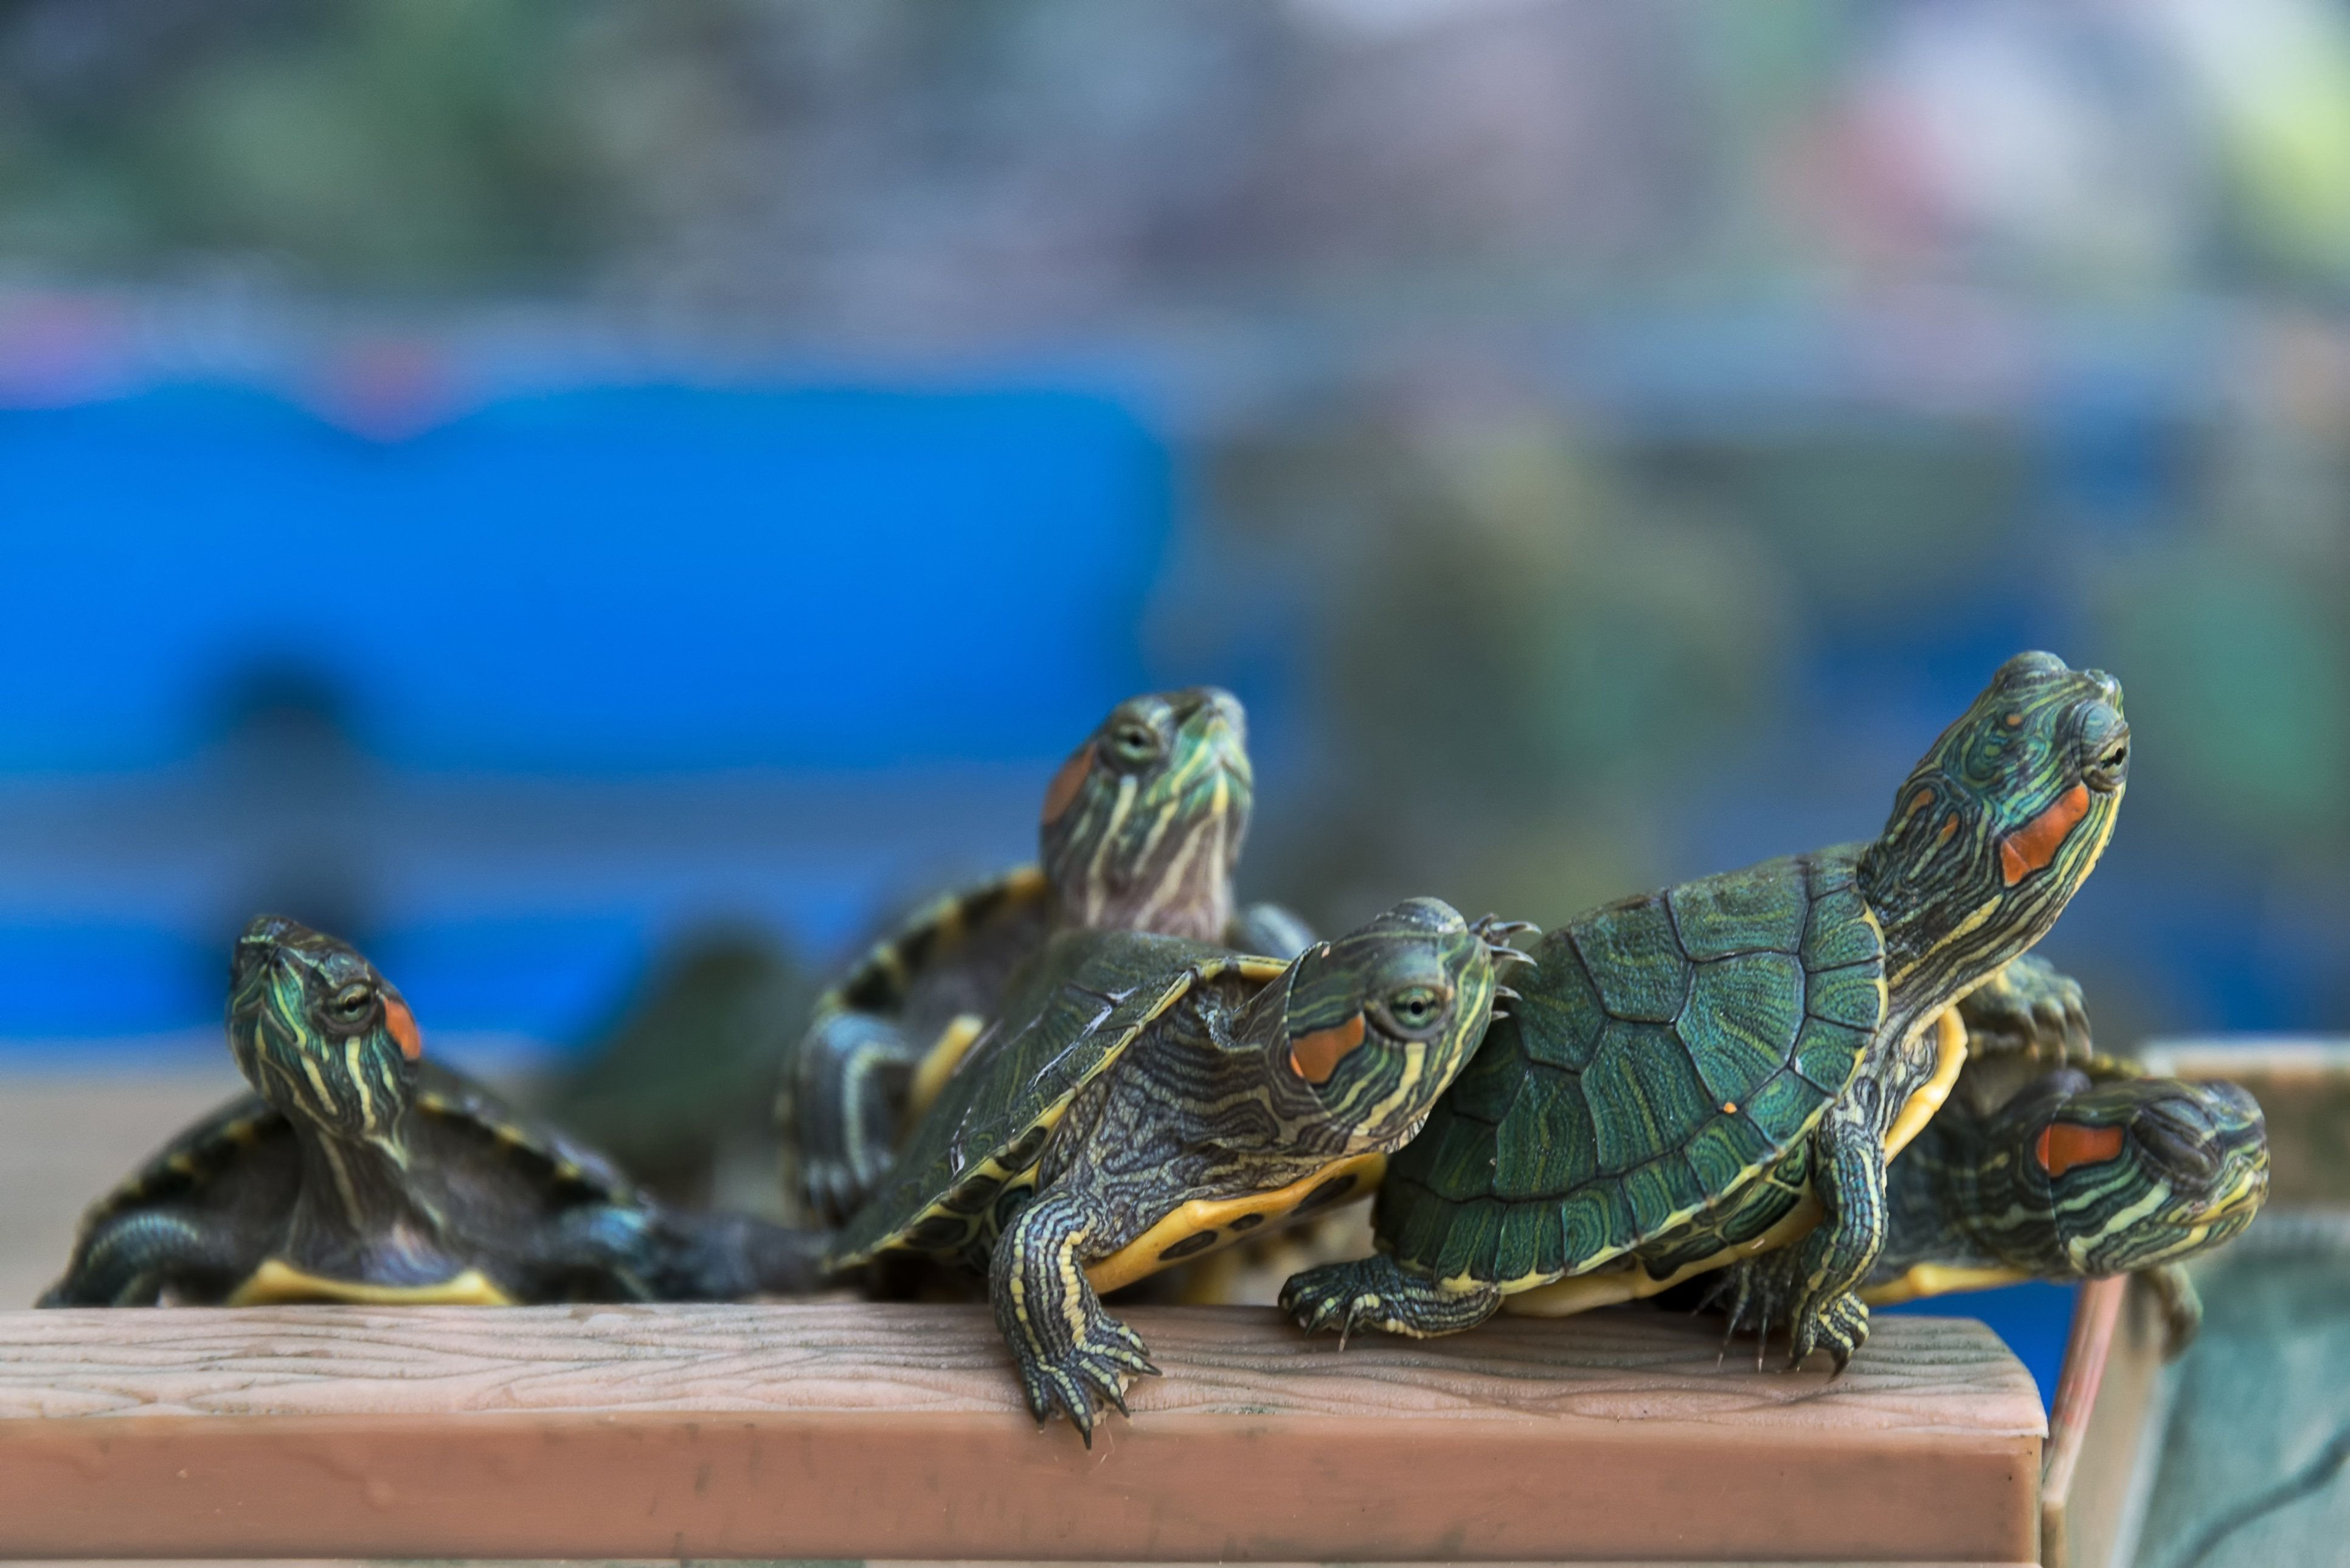 Turtles from Canadian man's pants not pictured.